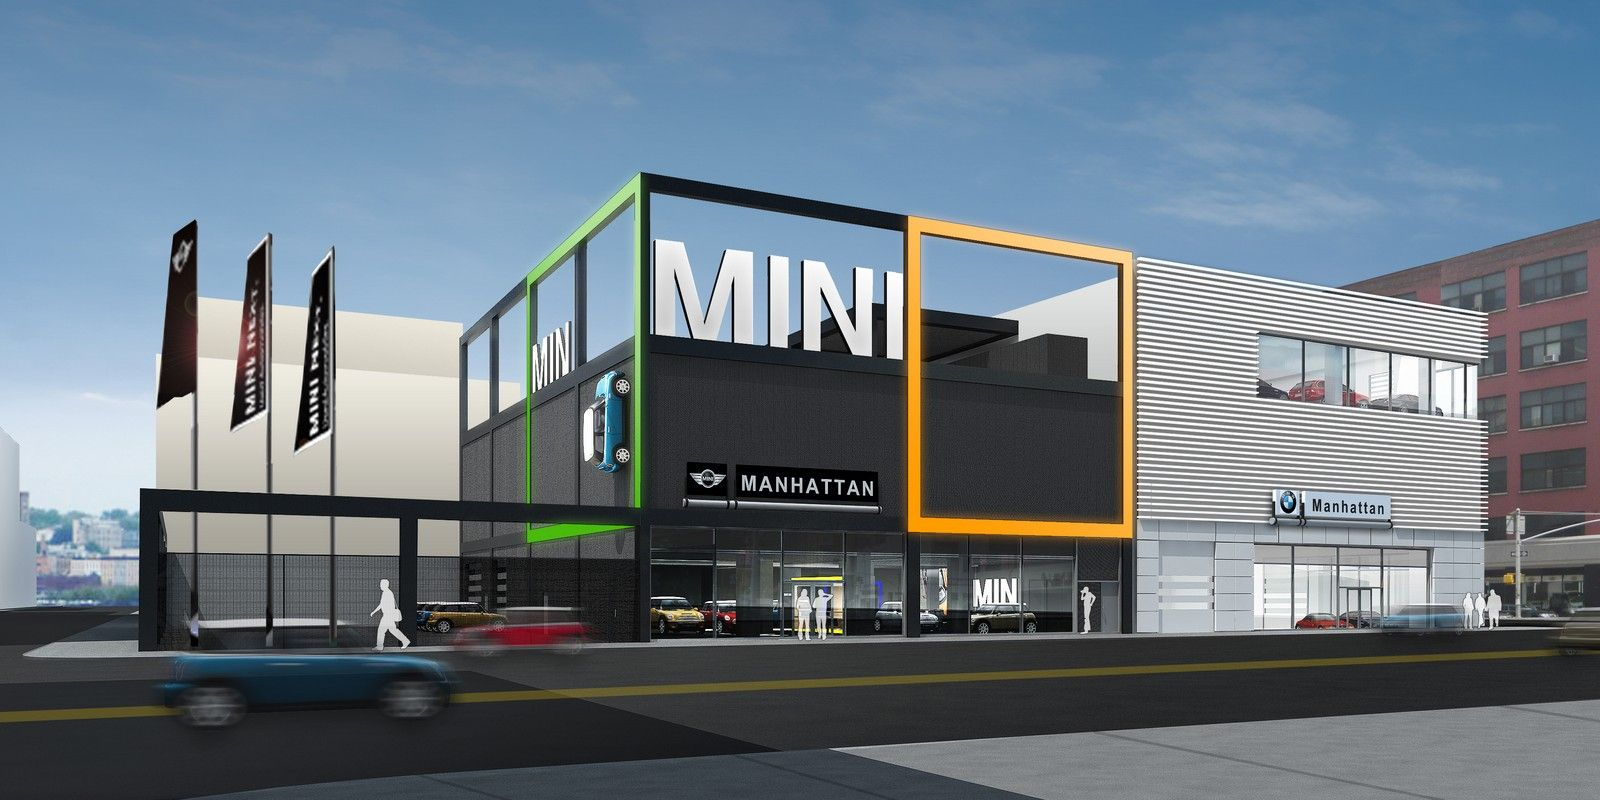 Bmw dealership bmw to renovate nyc bmw and mini dealerships for a sustainable future